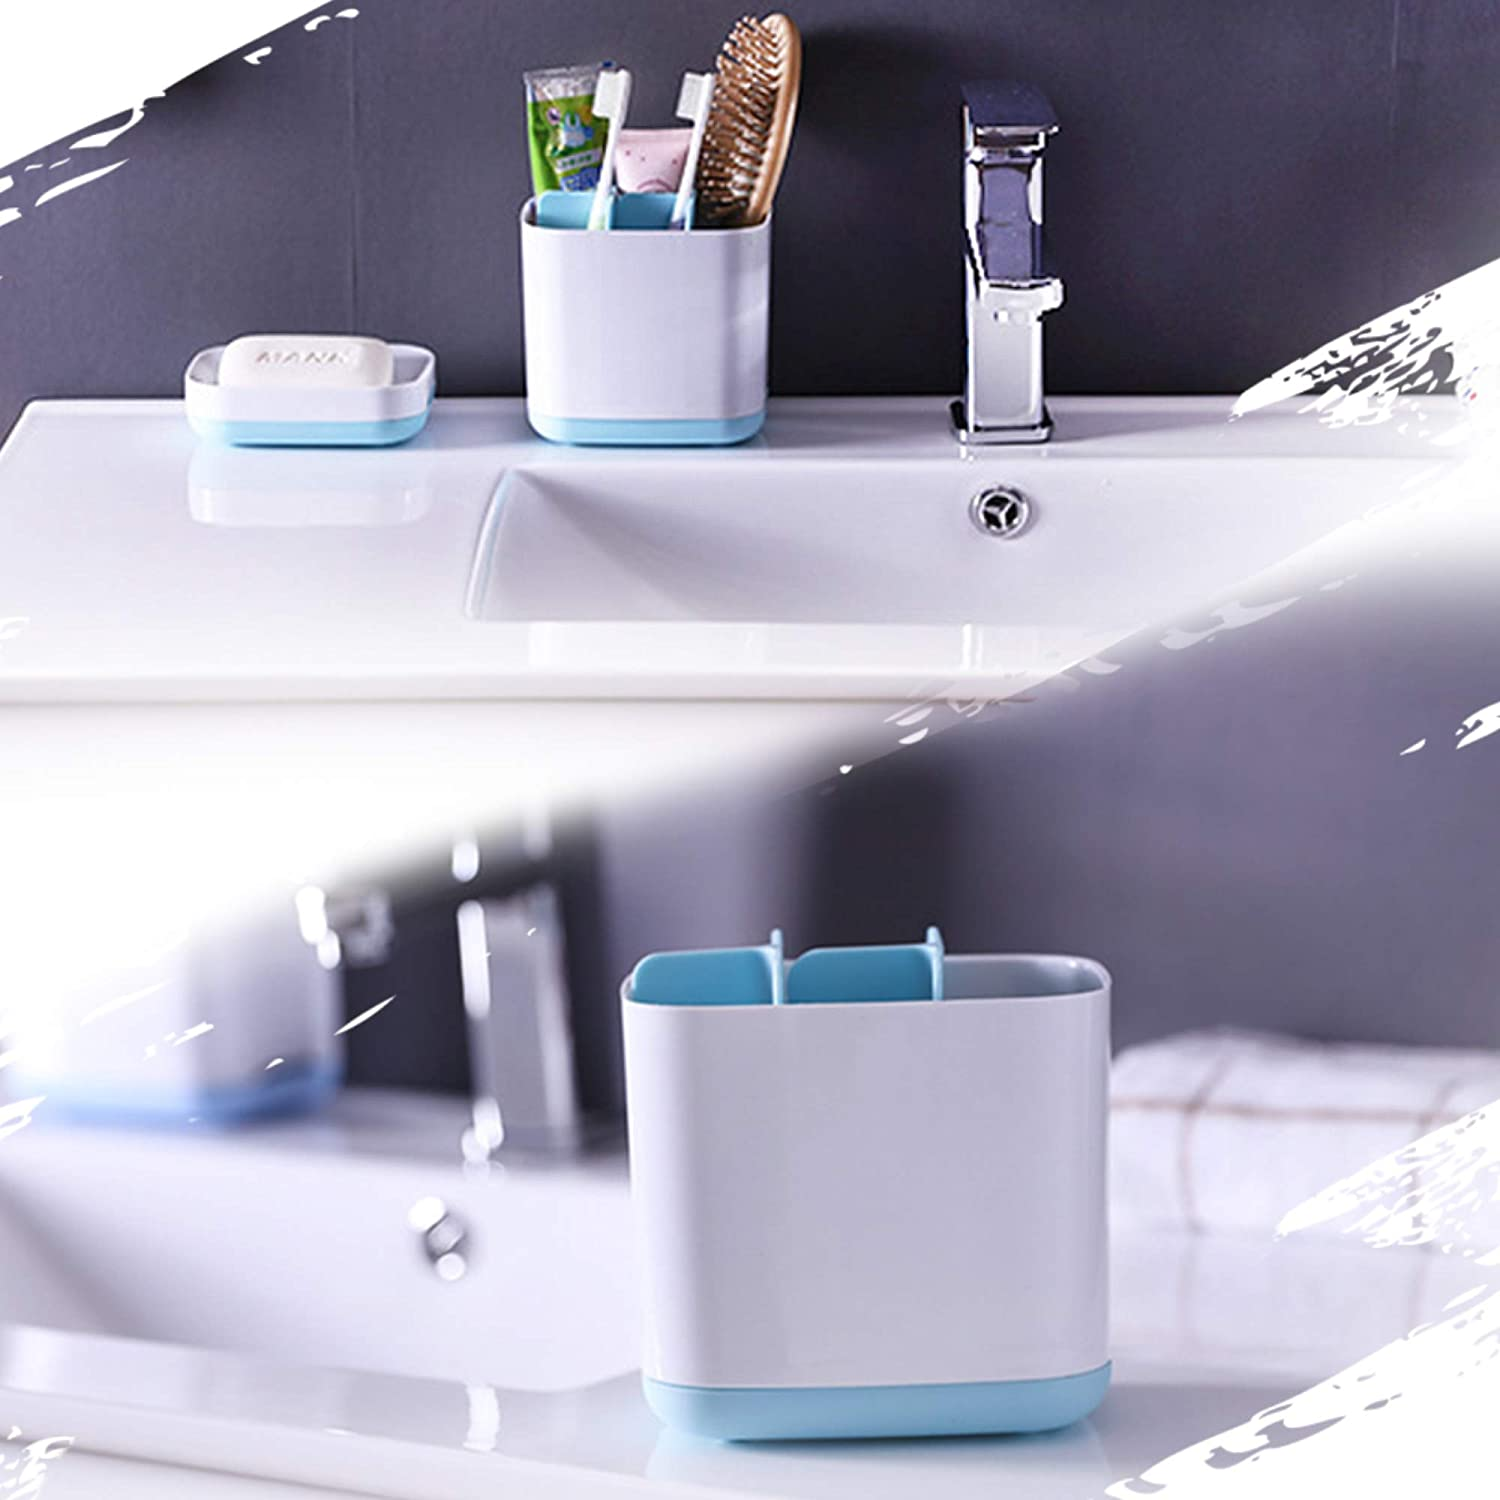 Famistar X-Large Toothbrush Holder,Plastic Bathroom Toothpaste Caddy,Multifunctional Toothbrush Stand 5 Slots for Electric Toothbrush,Toothpaste,Comb,Razor